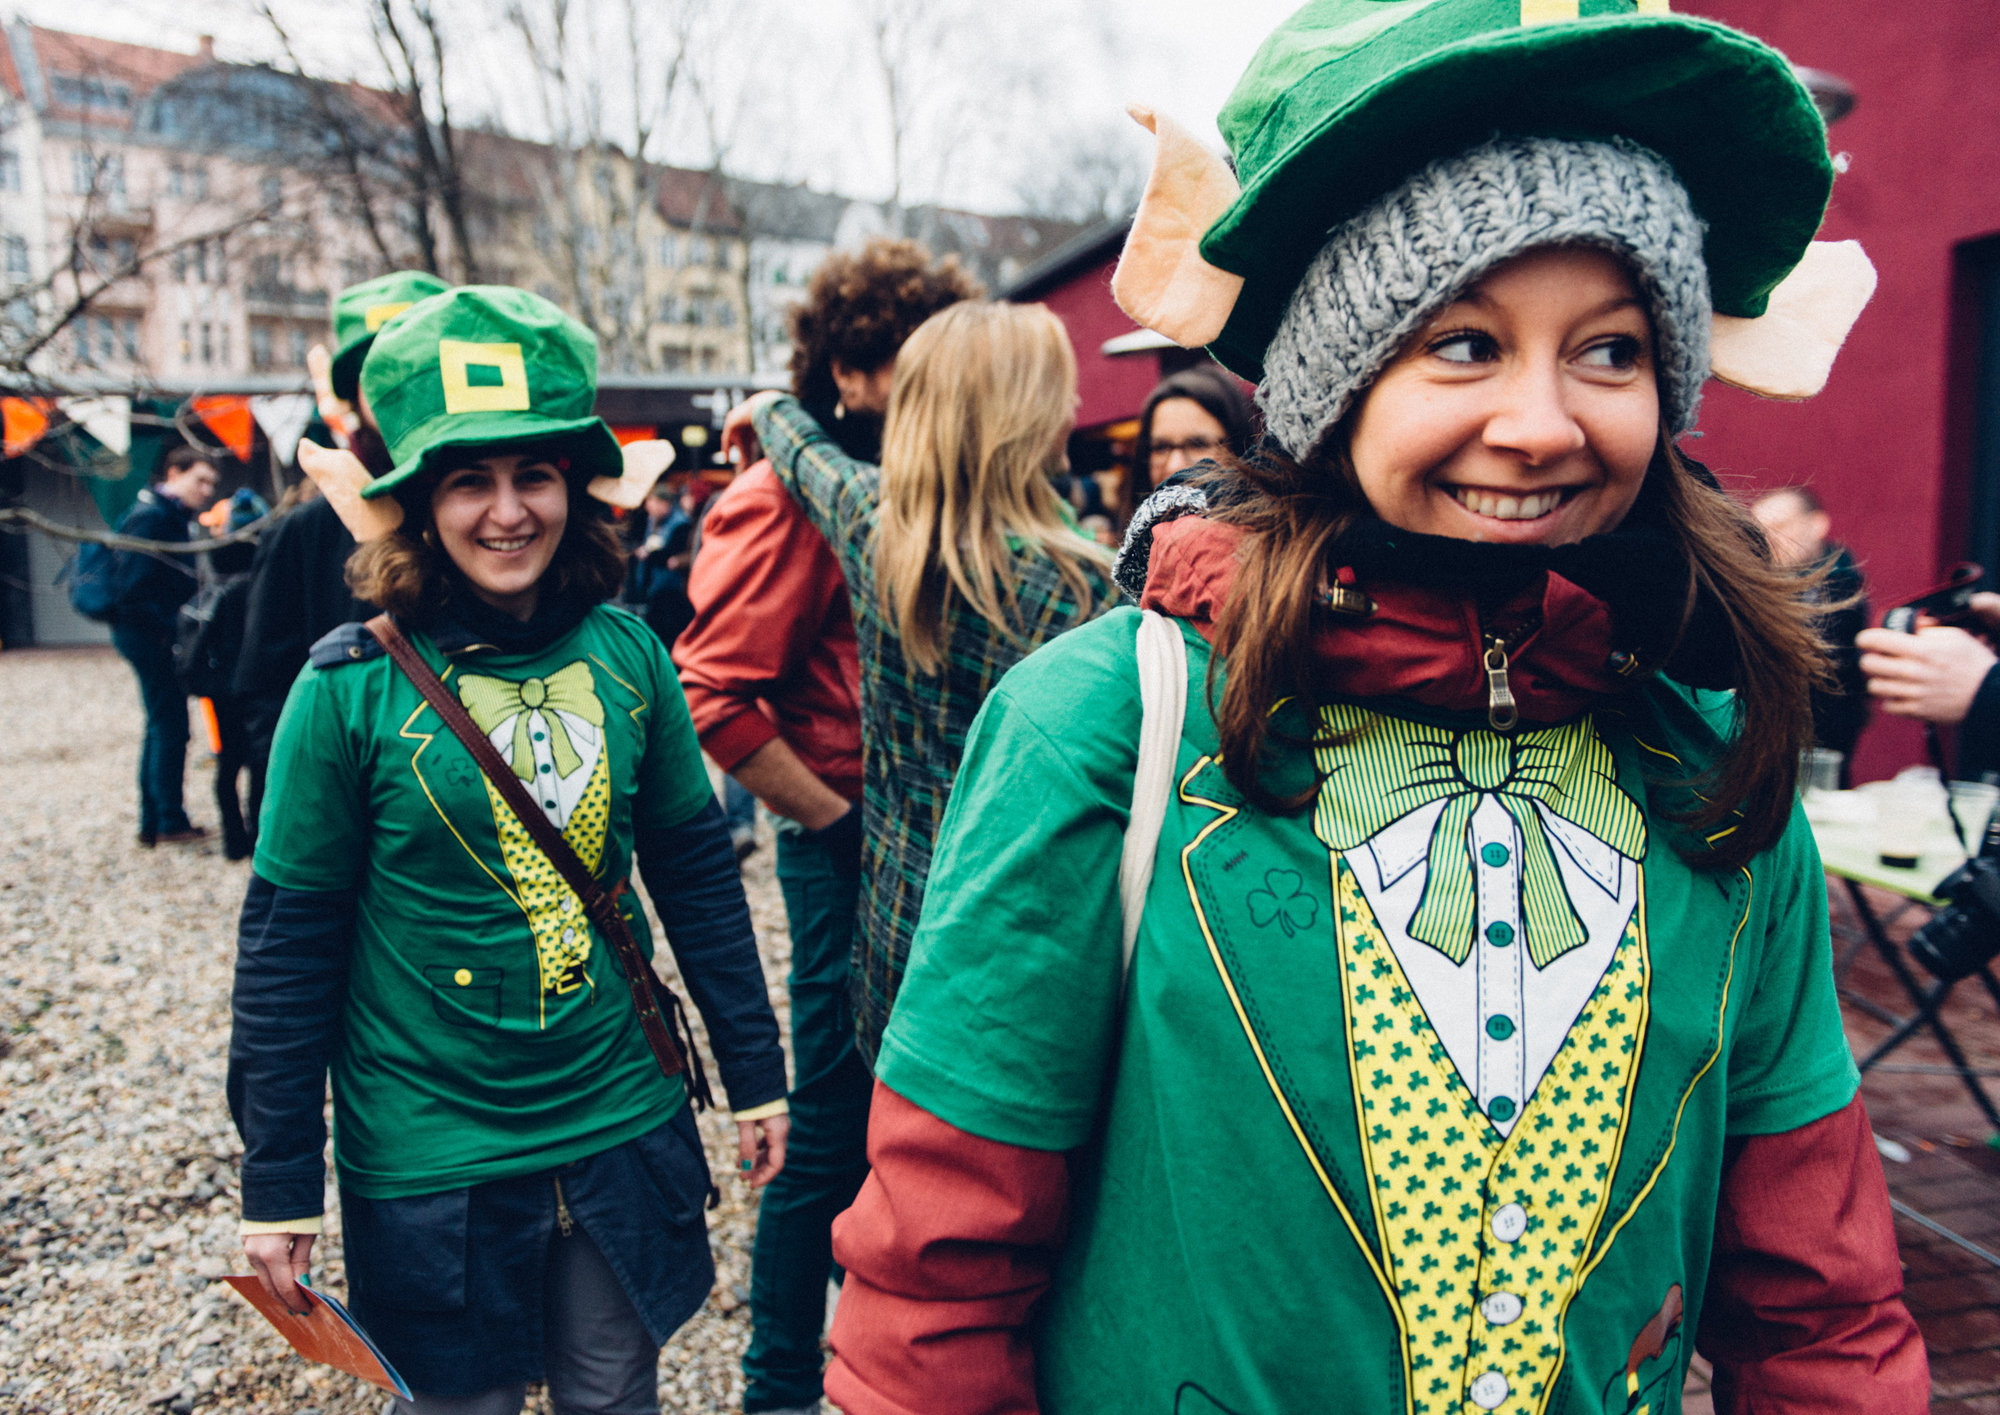 st-patricks-day-berlin-©-camille-blake-41.jpg